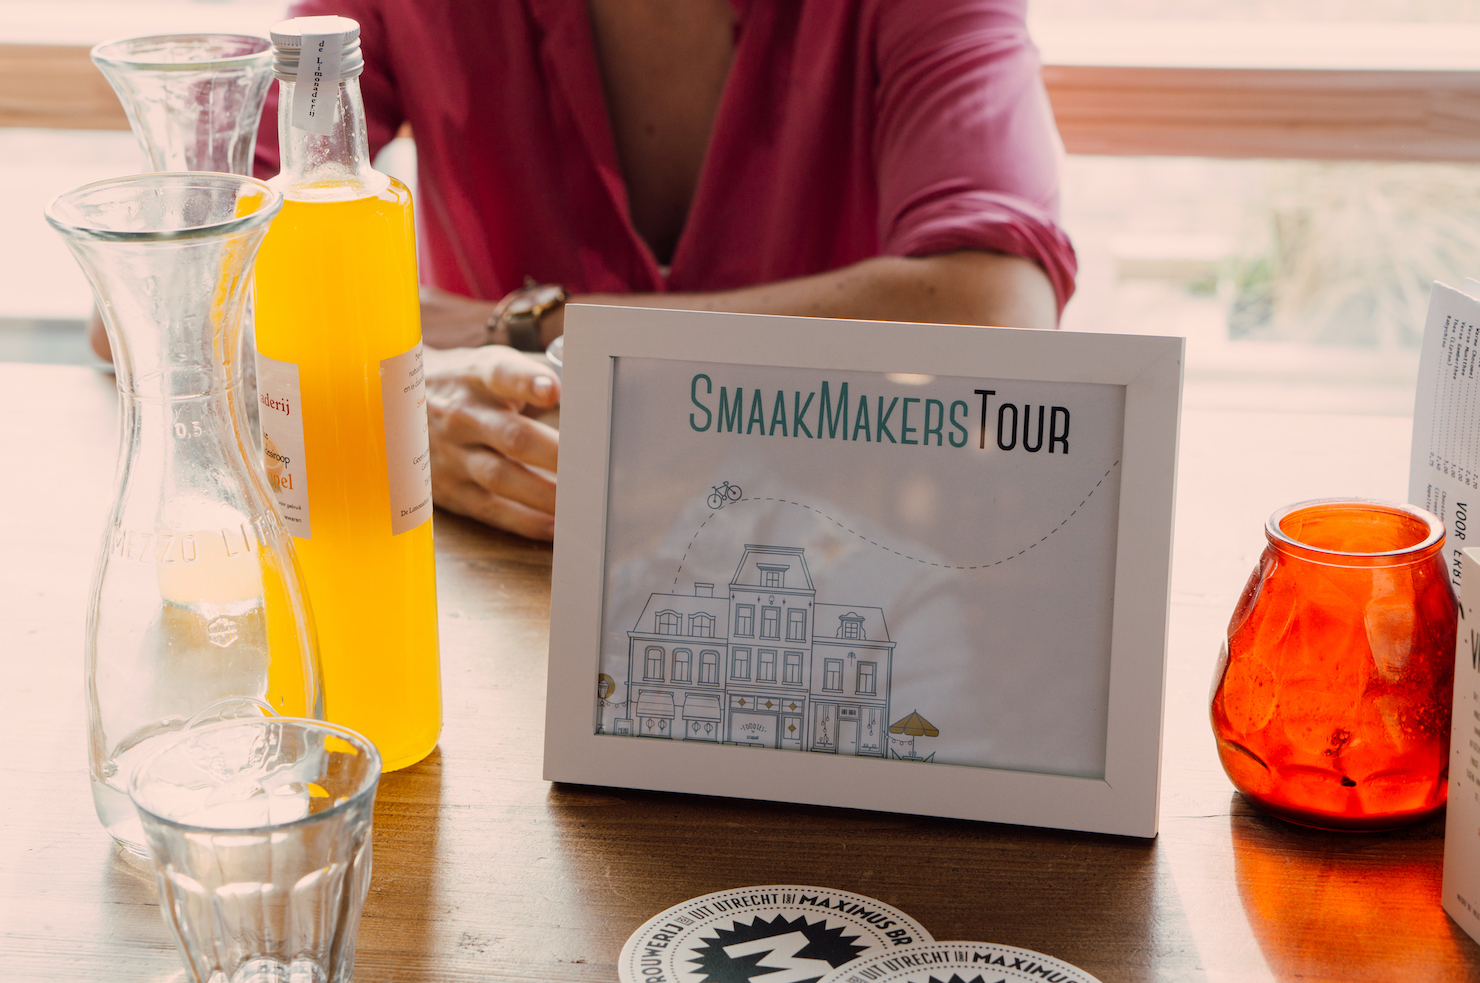 Smaakmakers Tour